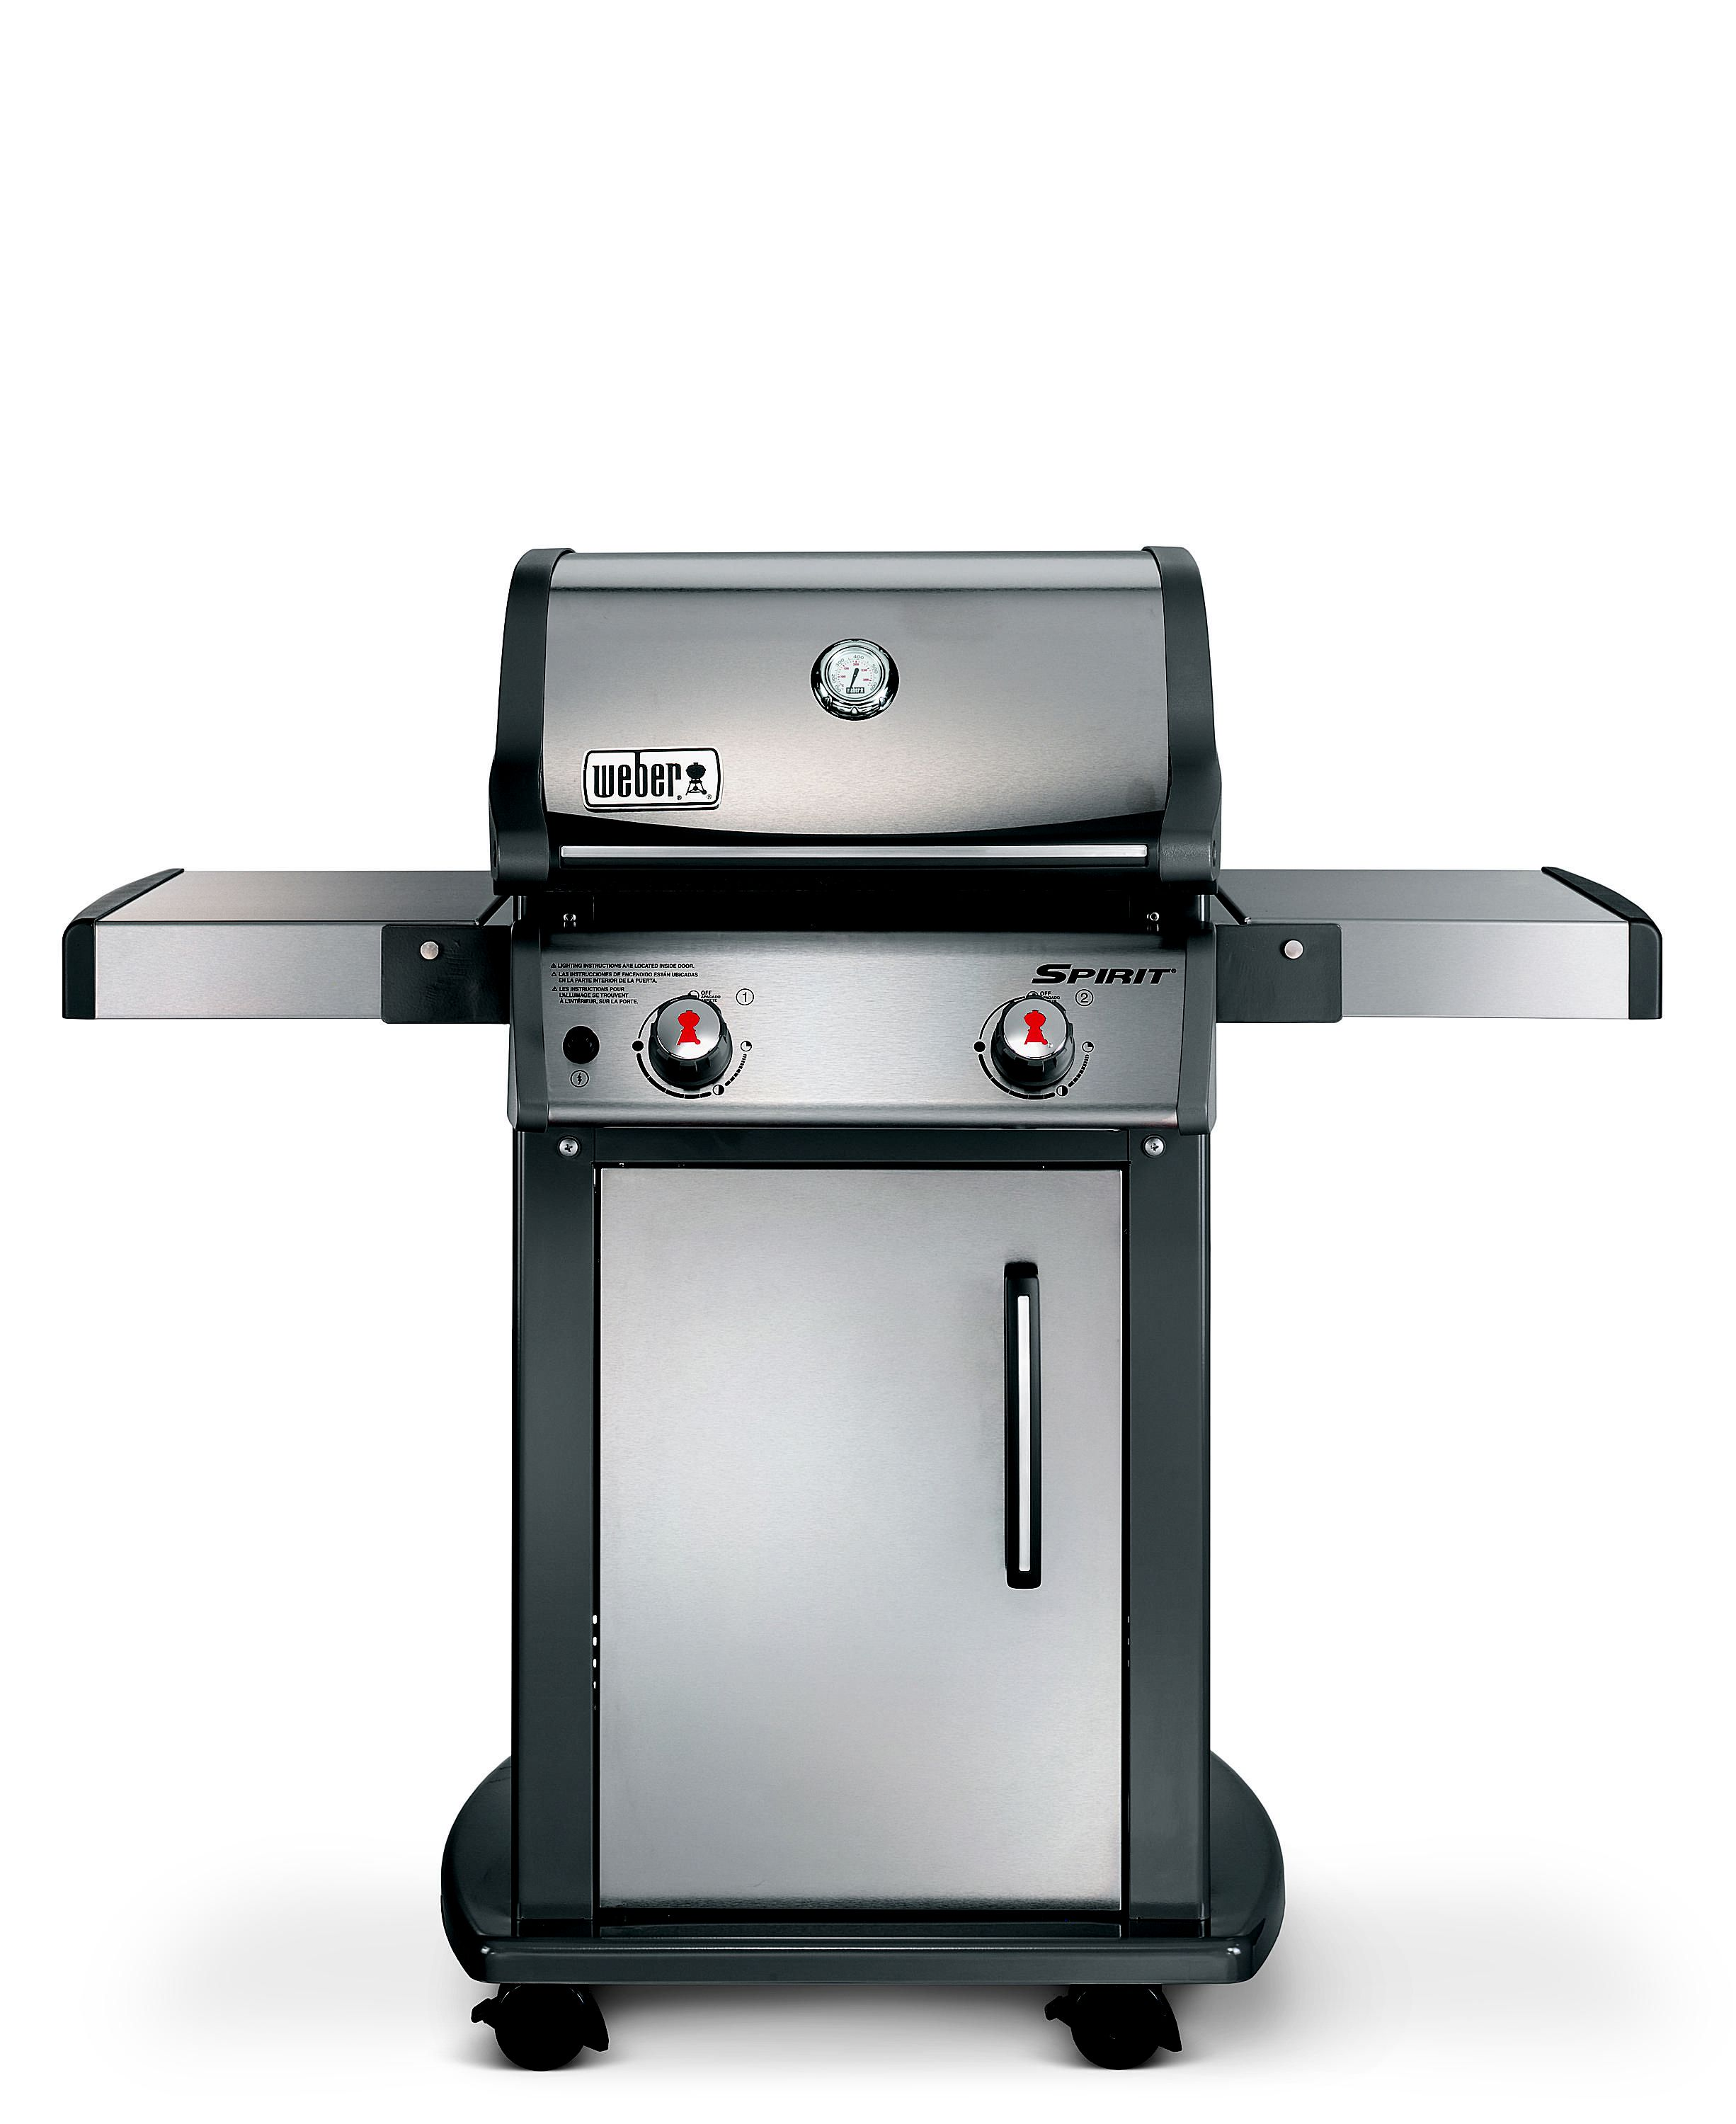 weber spirit s 210 gas grill review. Black Bedroom Furniture Sets. Home Design Ideas